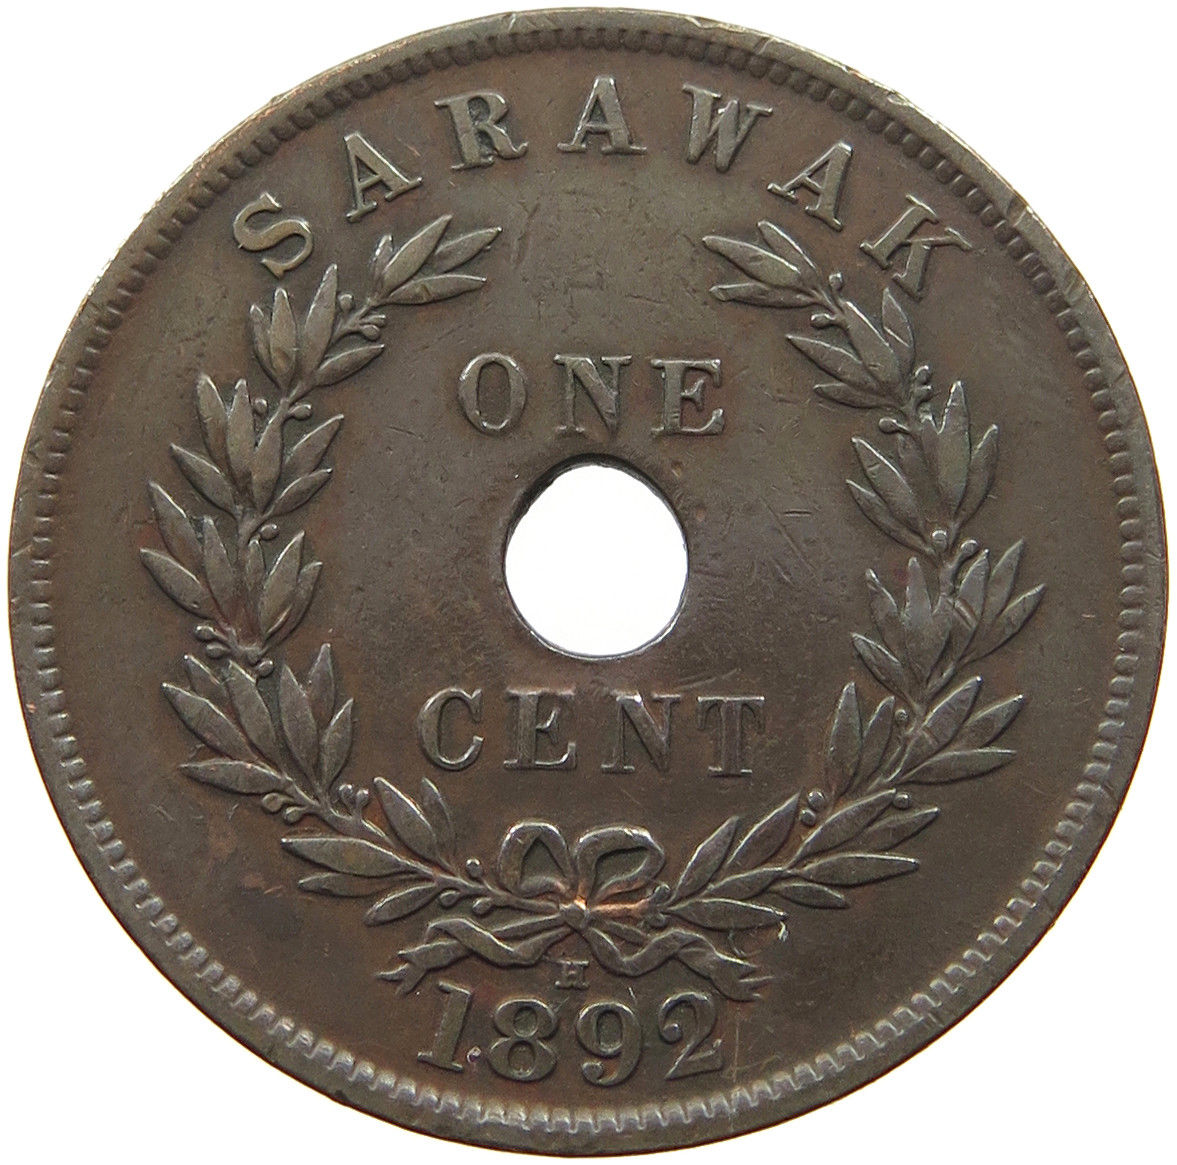 One Cent 1892: Photo Sarawak Cent 1892